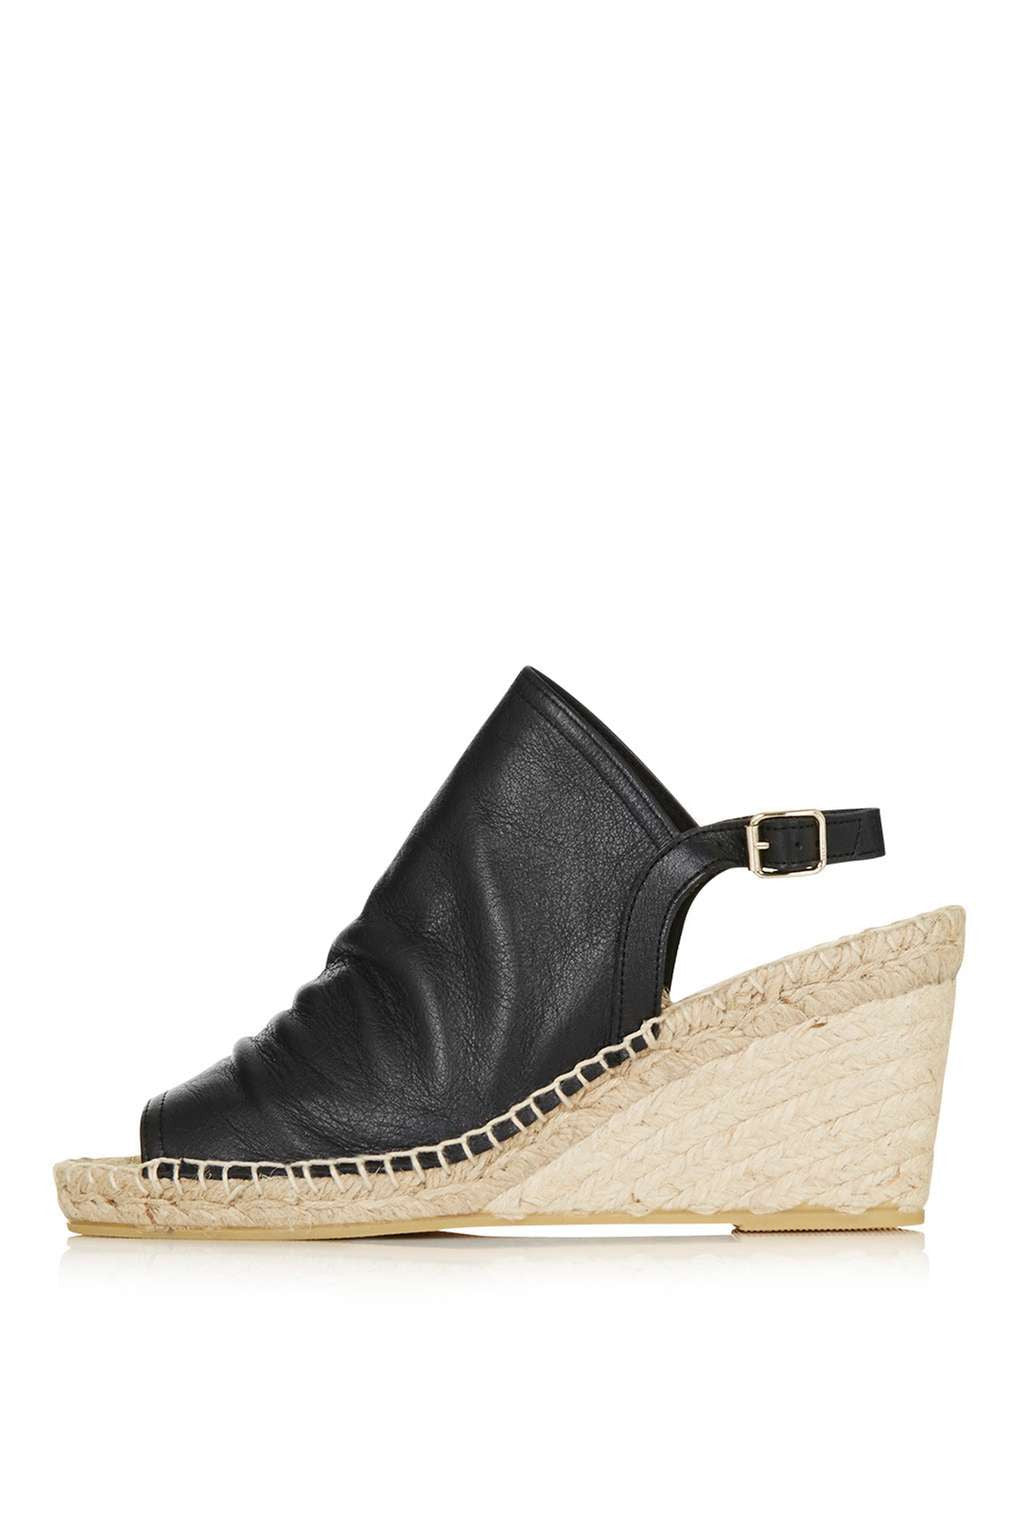 TopShop WEEKEND Espadrille Wedge